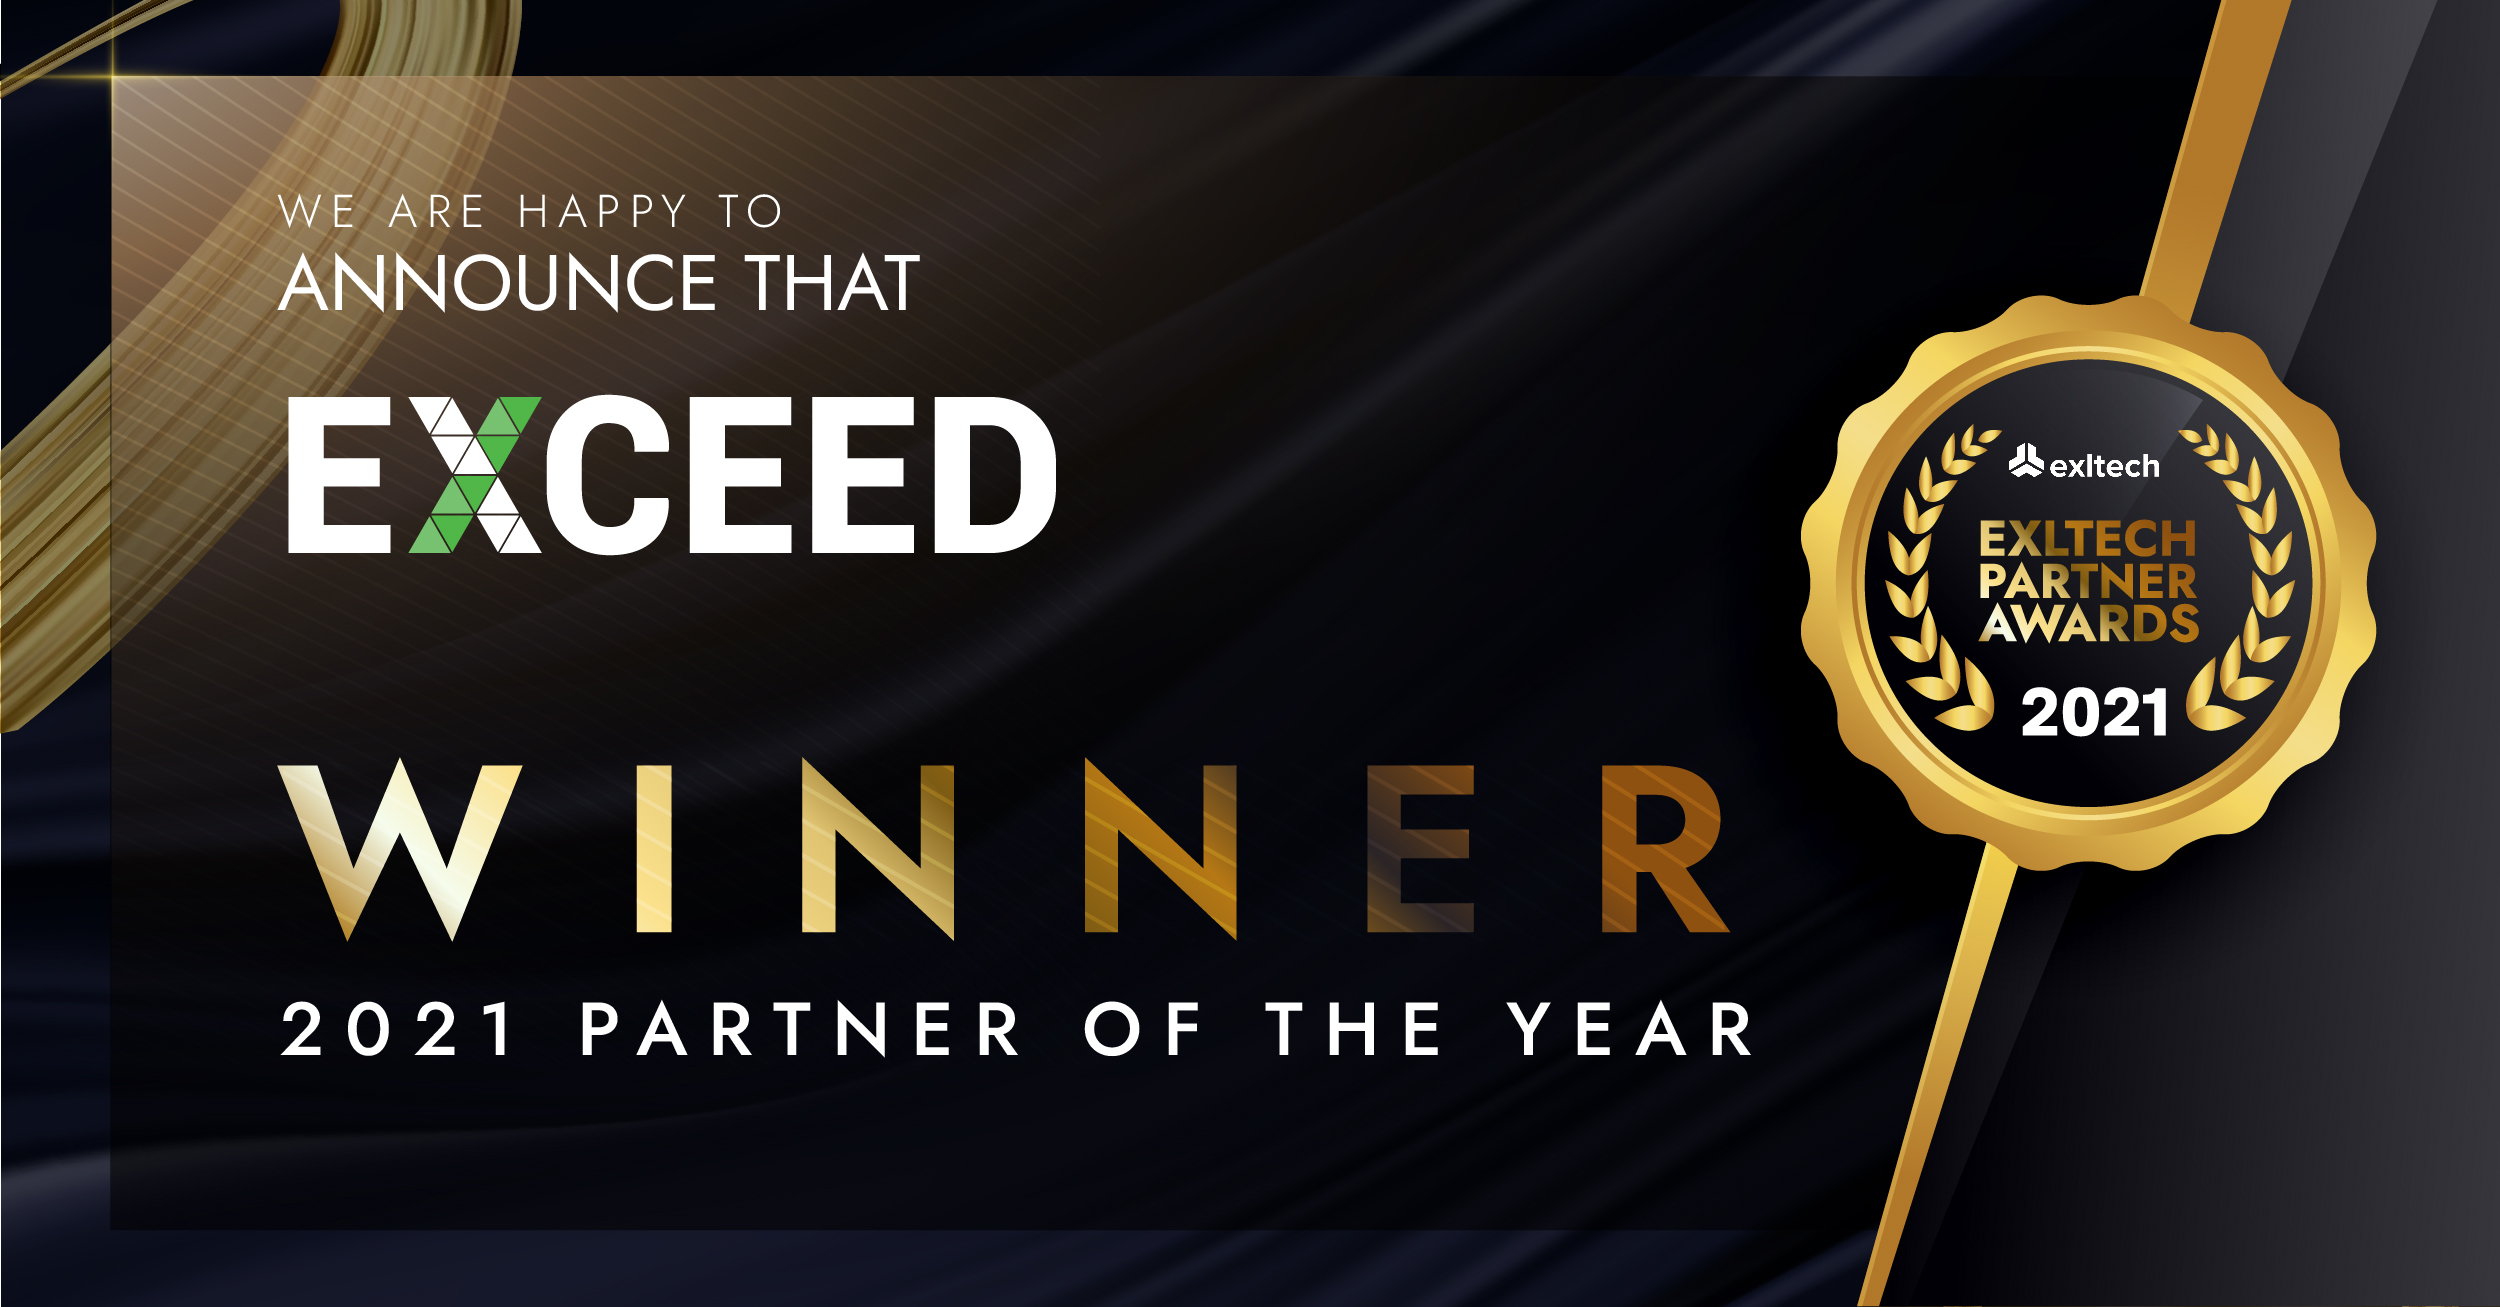 Partner of the Year!